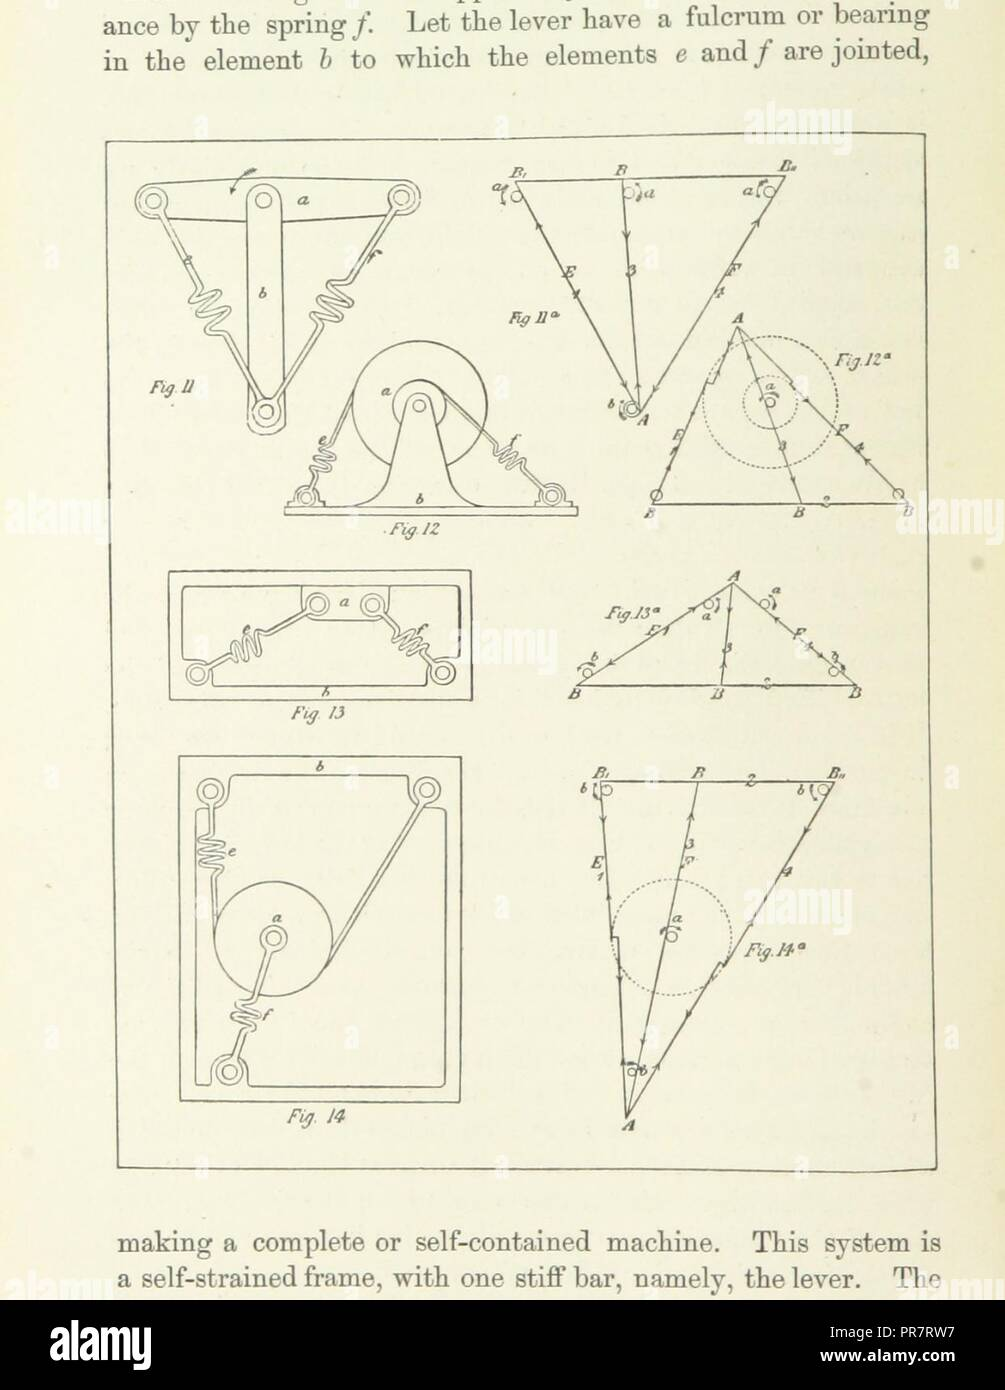 page 302 of 'Papers literary, scientific, &c. . Edited by Sidney Colvin . and J. A. Ewing . With a memoir by R. L. Stevenson' . - Stock Image